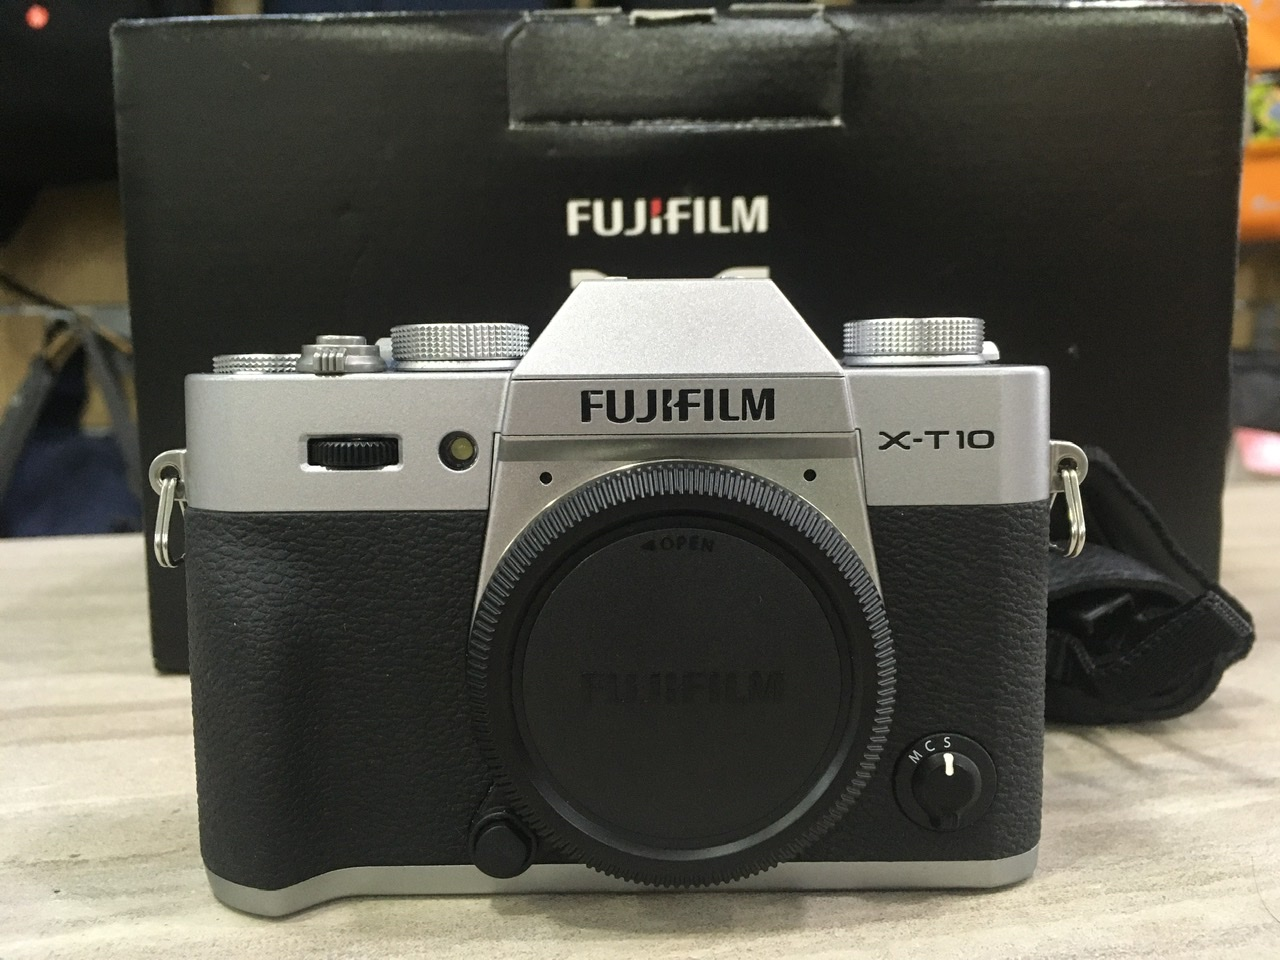 Used - Fujifilm X-T10 Mirrorless (Body Only) (Silver)